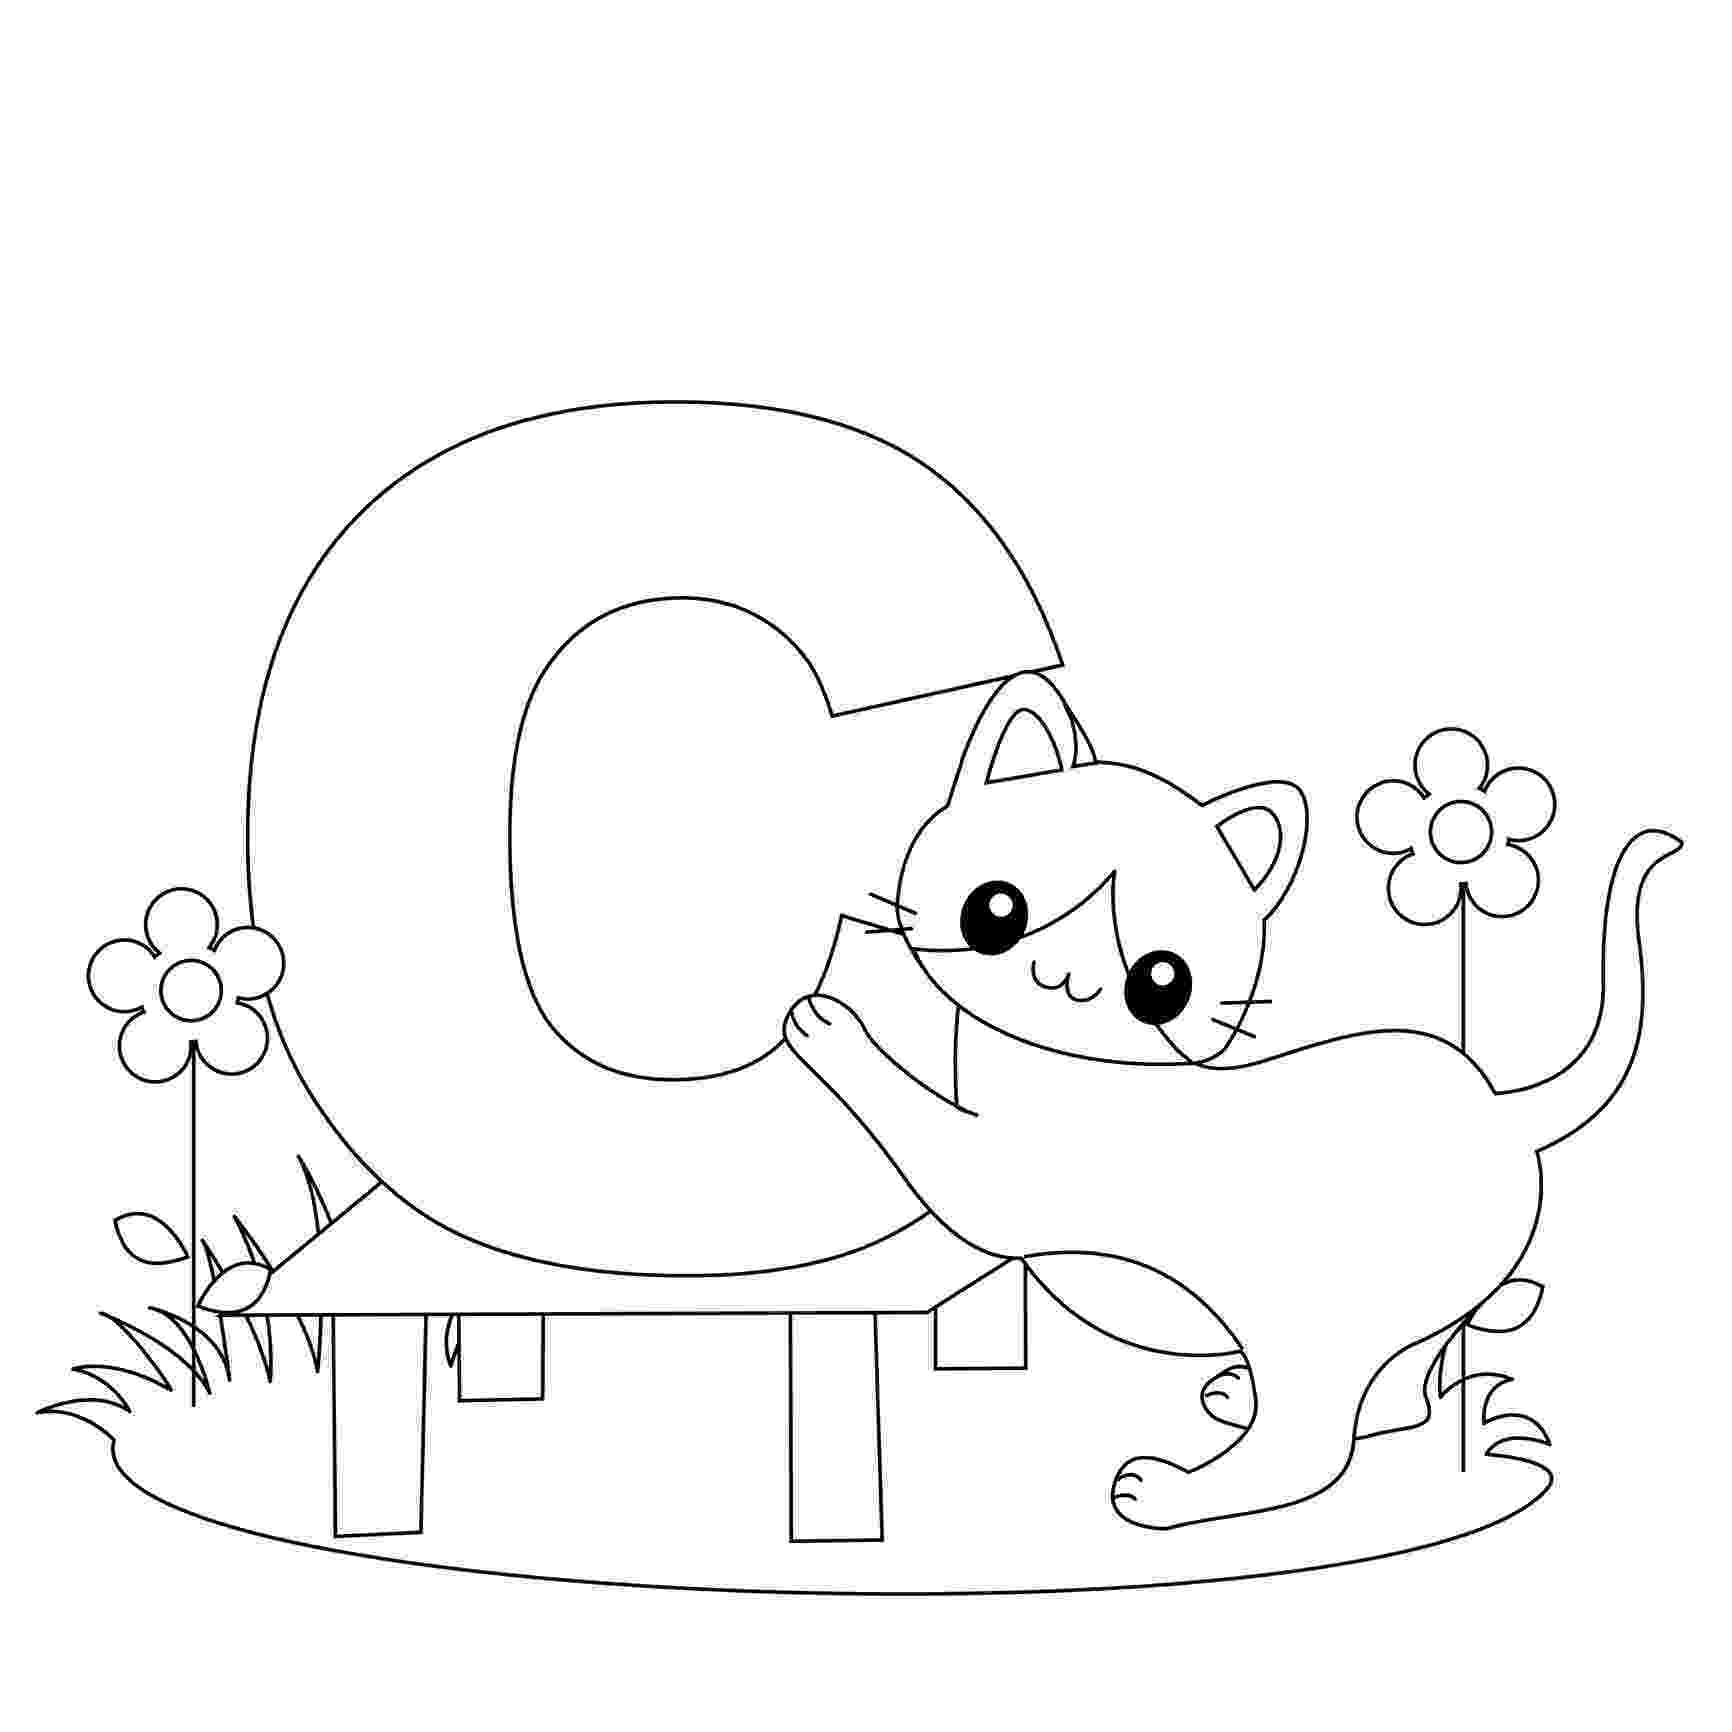 c coloring page alphabet coloring pages c page coloring